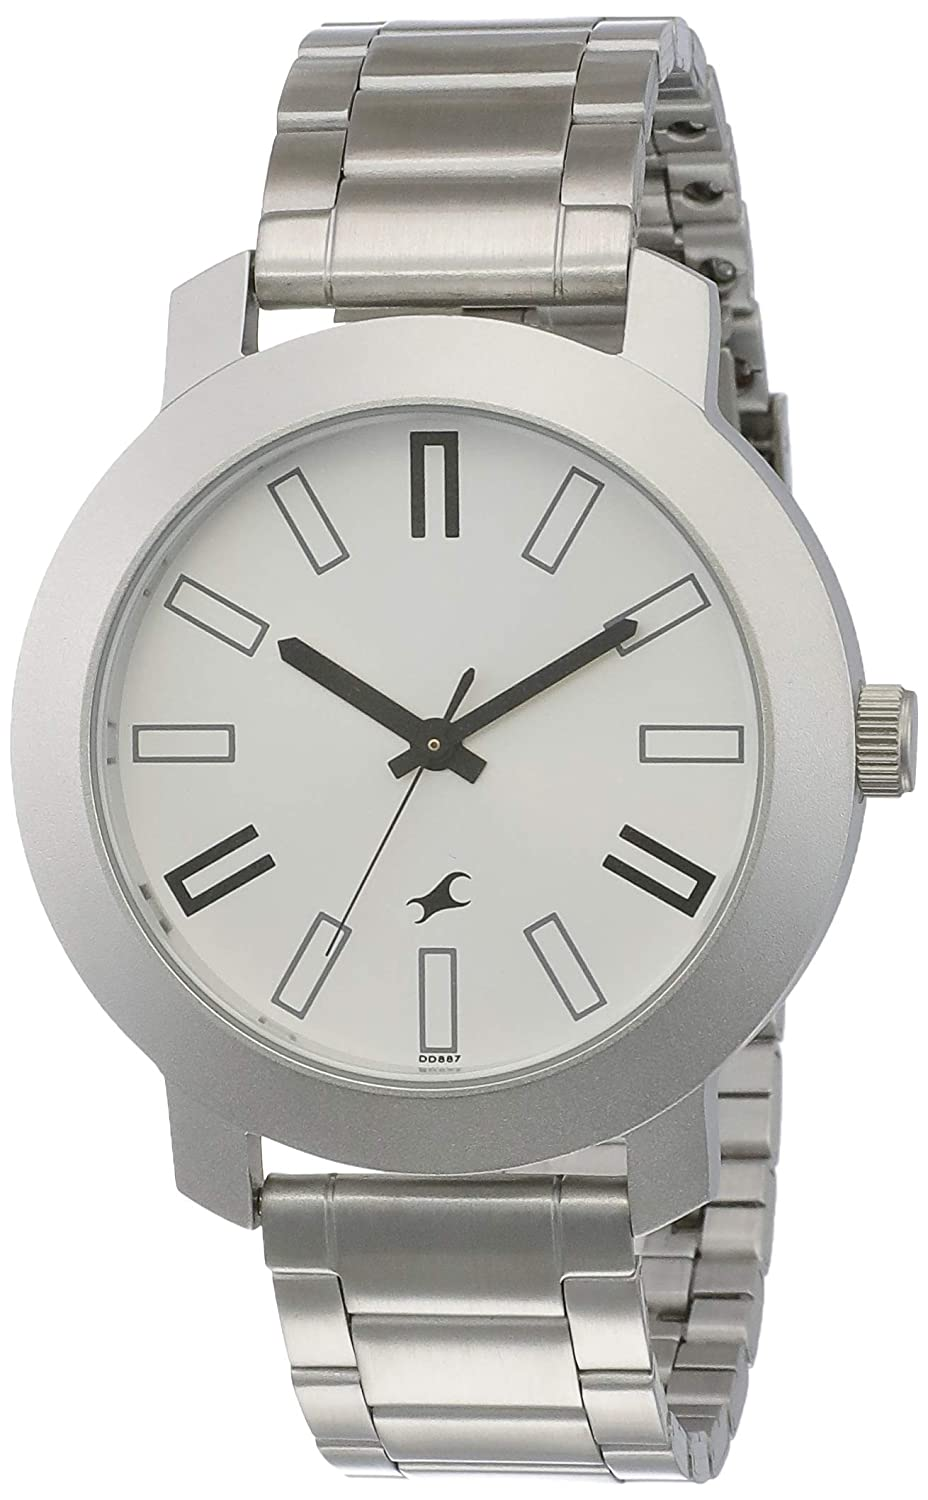 91e8a274400 Buy Fastrack Casual Analog Silver Dial Men s Watch -NK3120SM01 Online at  Low Prices in India - Amazon.in